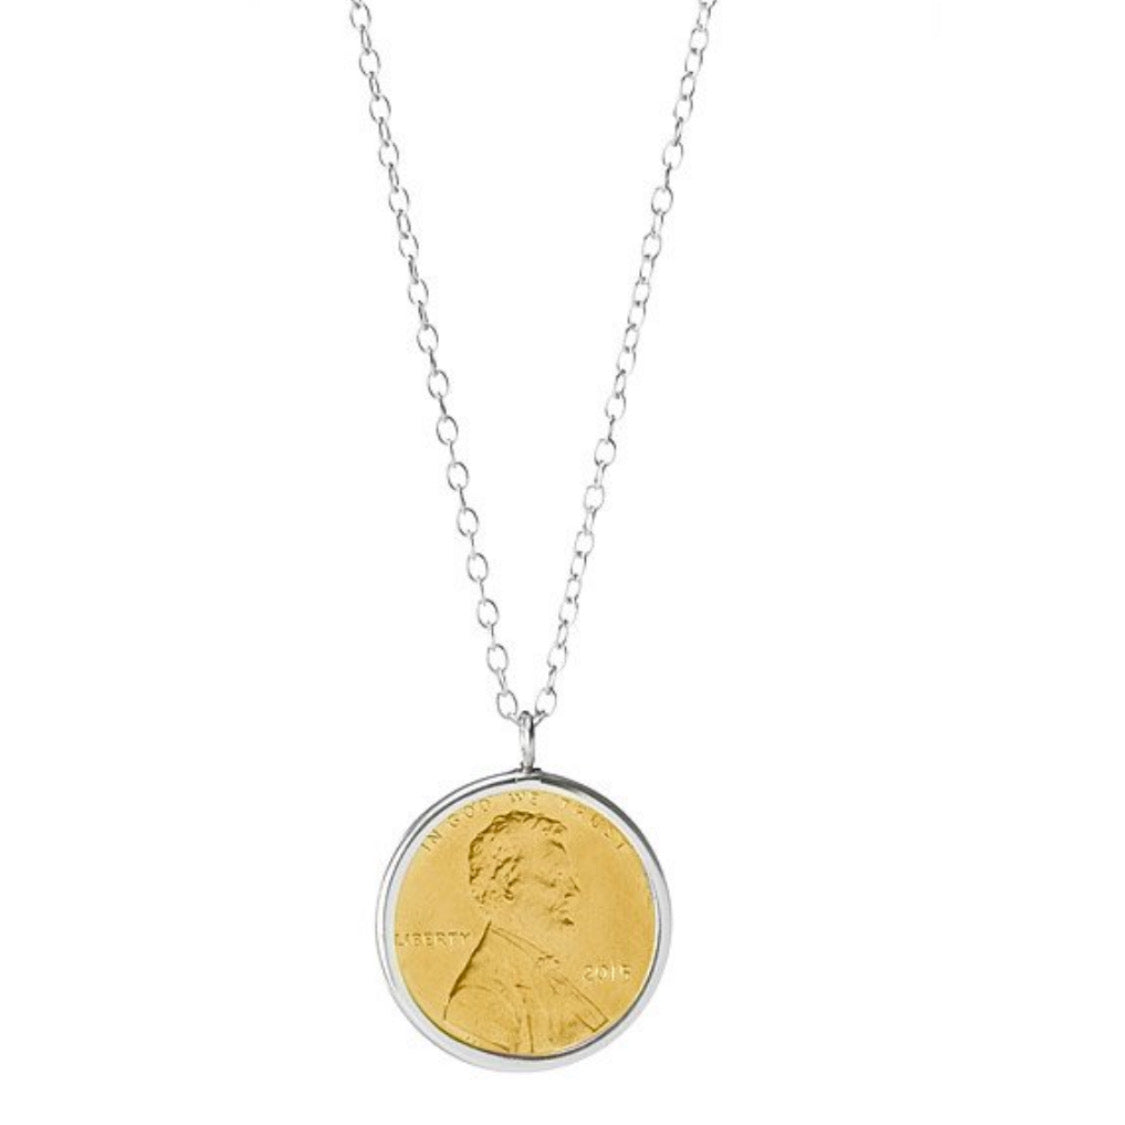 CUSTOMIZABLE Sterling Chain with YELLOW GOLD Plated Penny